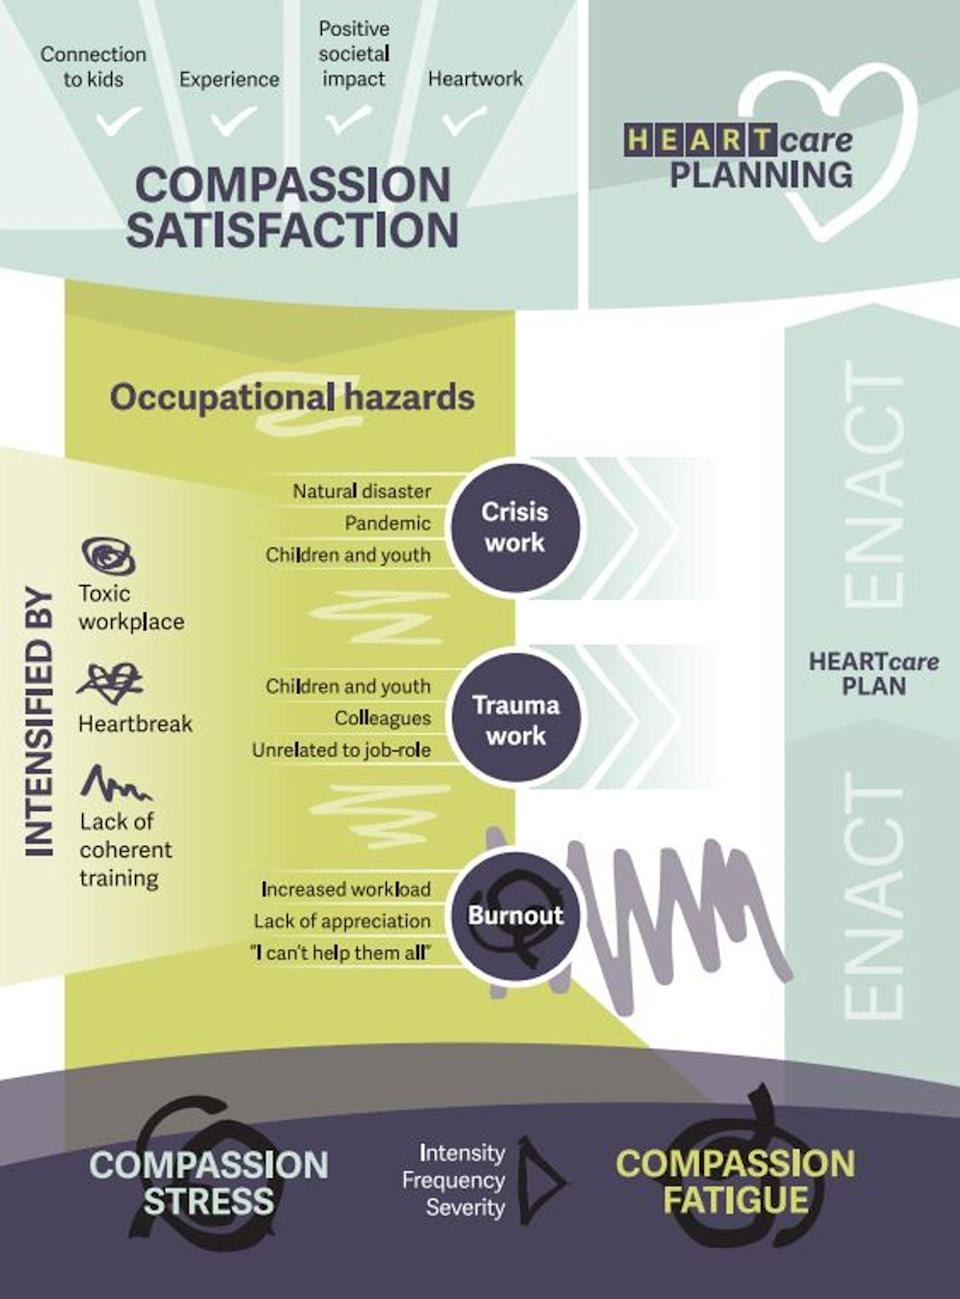 Chart showing that compassion satisfaction can become compassion fatigue when workplace hazards are unmitigated.